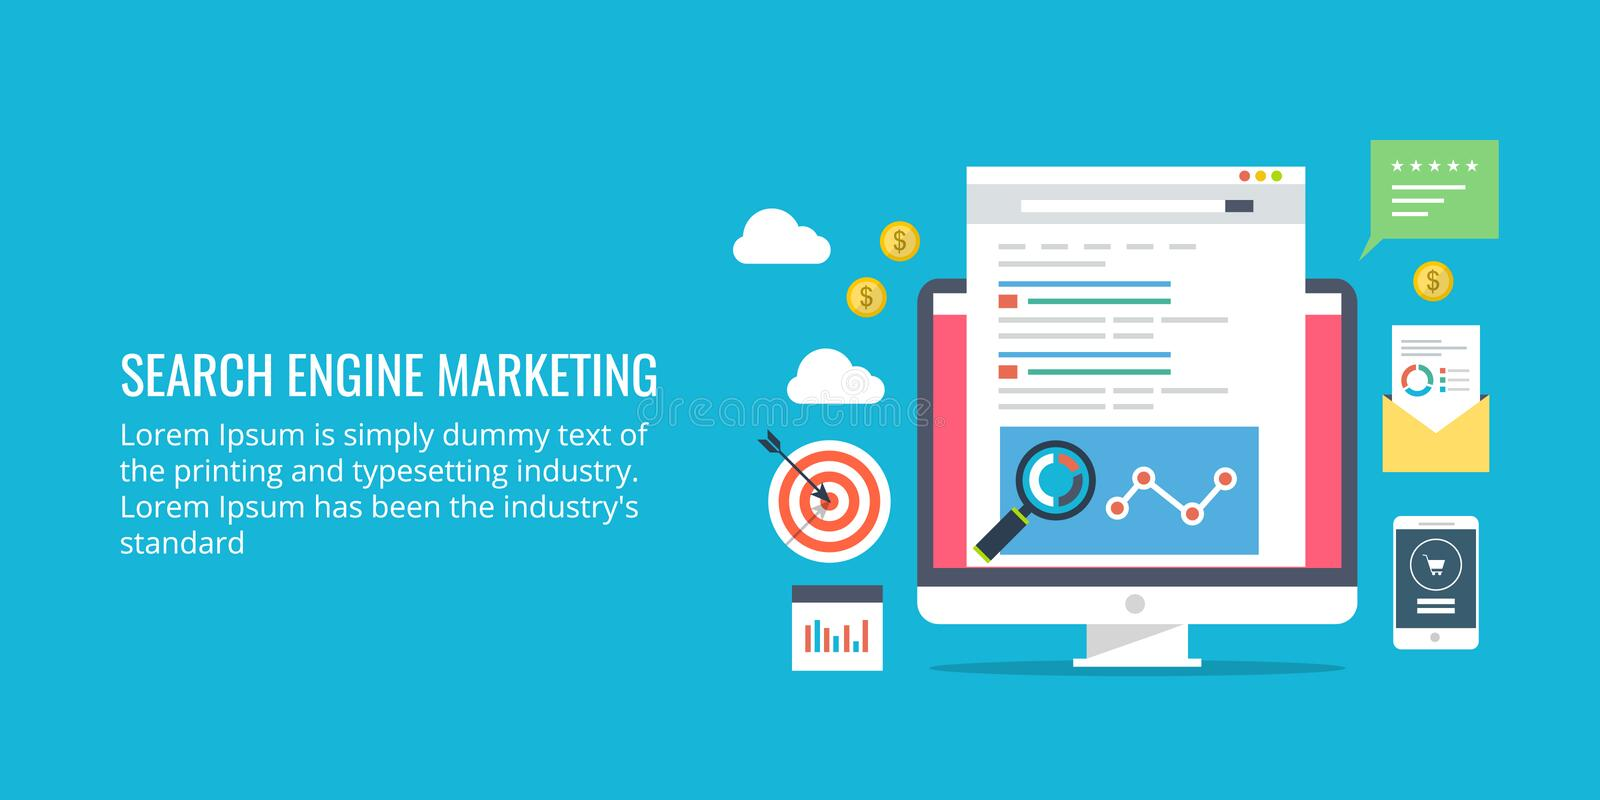 Search engine marketing, web and mobile paid advertising, analytics. Flat design marketing banner. vector illustration